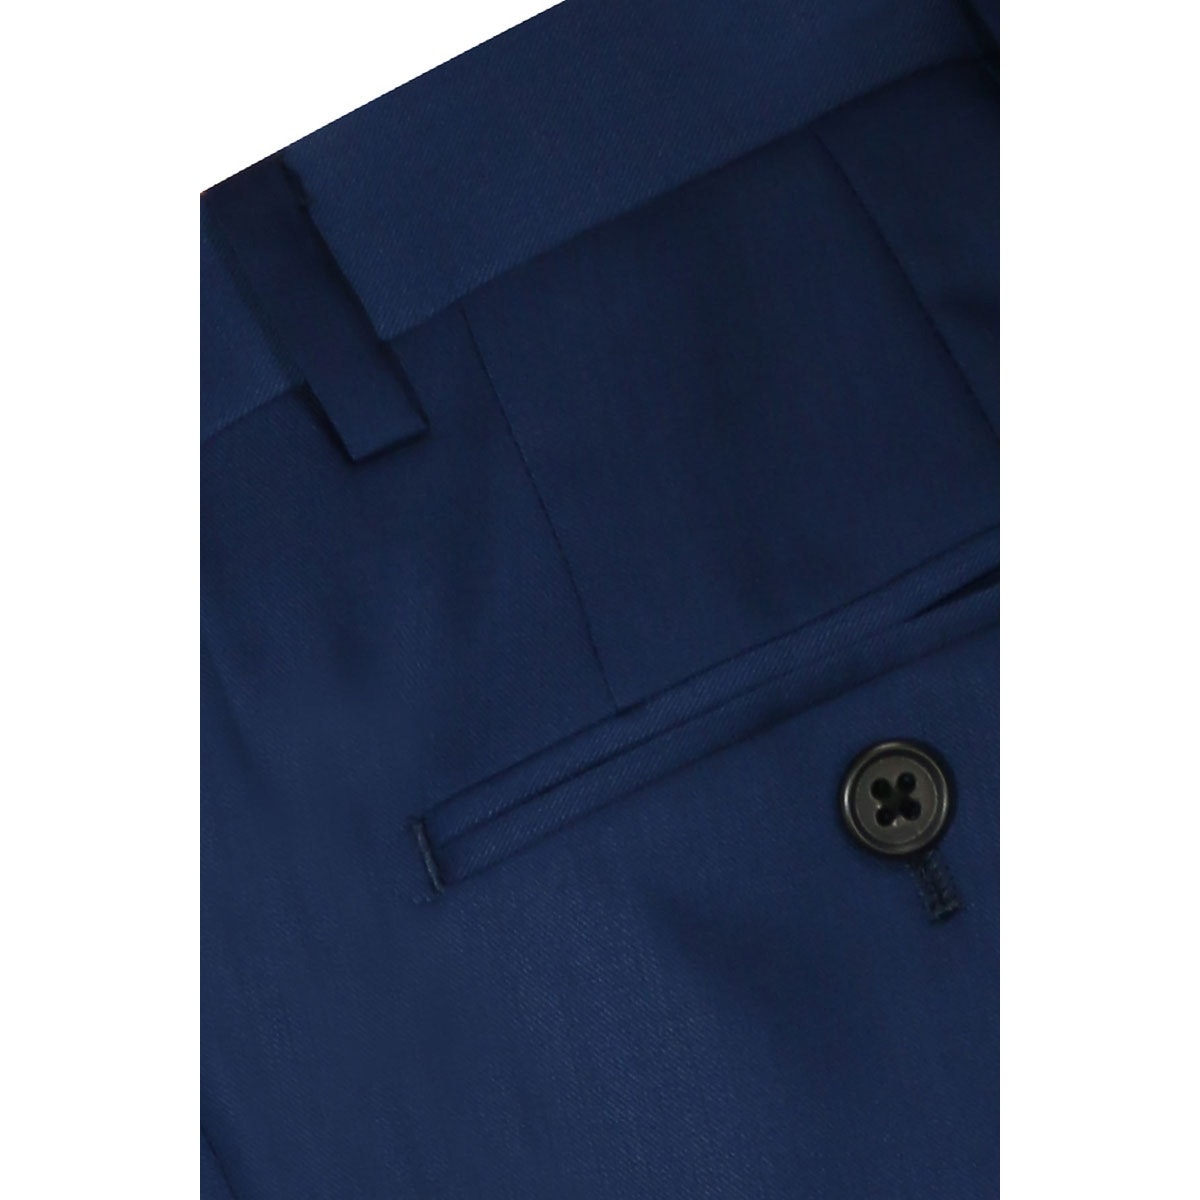 InStitchu Collection The De Rossi Navy Blue Wool Pants